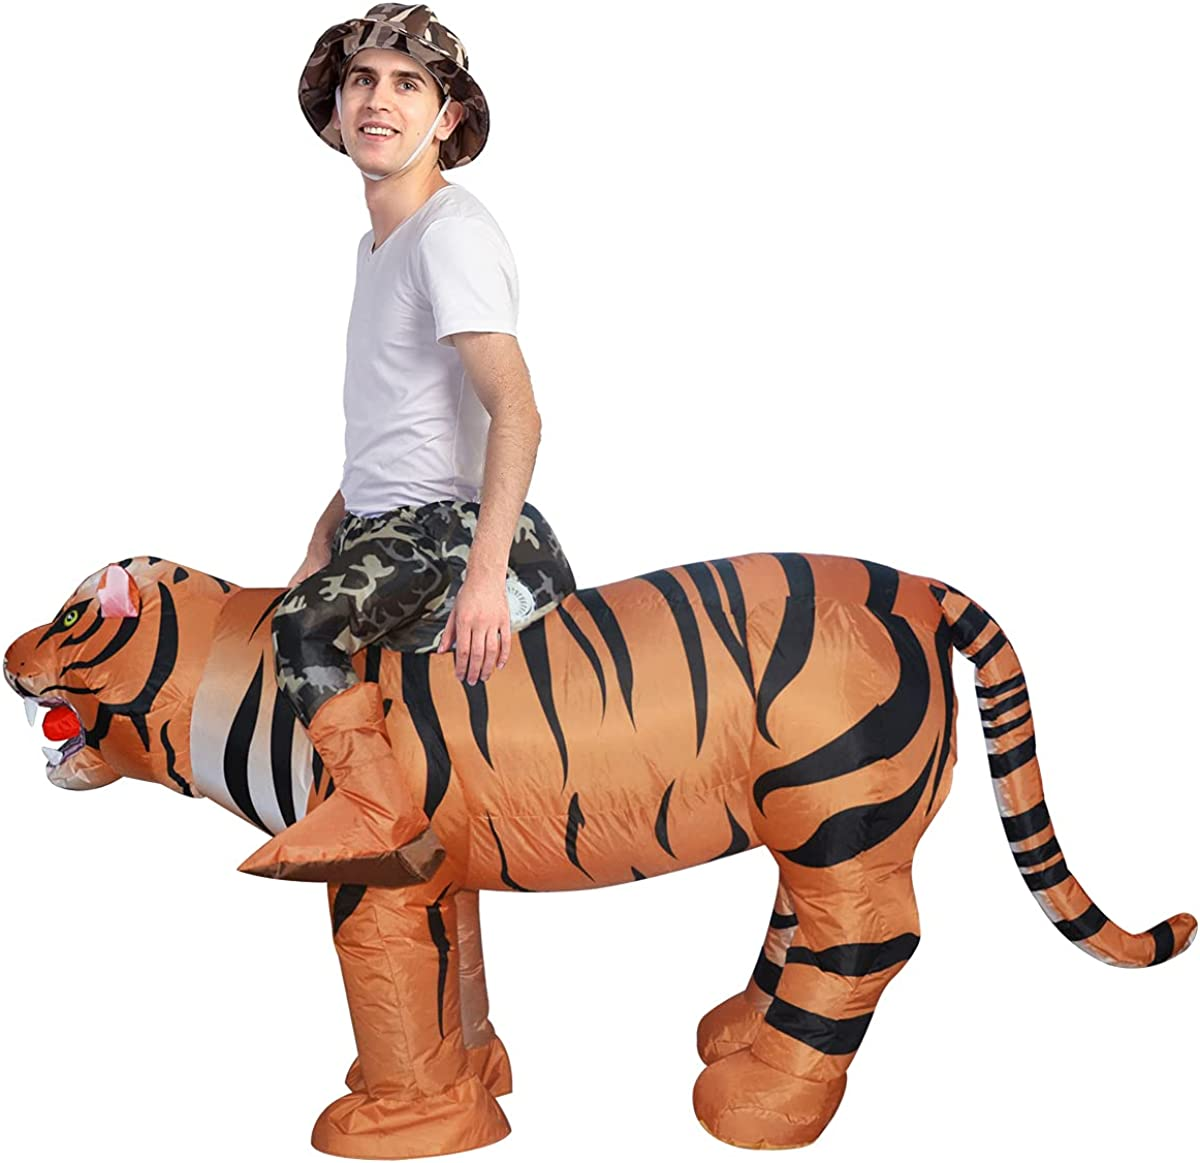 GOOSH Adult Size Inflatable Tiger Unisex Costume Blow Up Men Women Riding a Tiger Deluxe Halloween Funny Costume Godzilla Toy